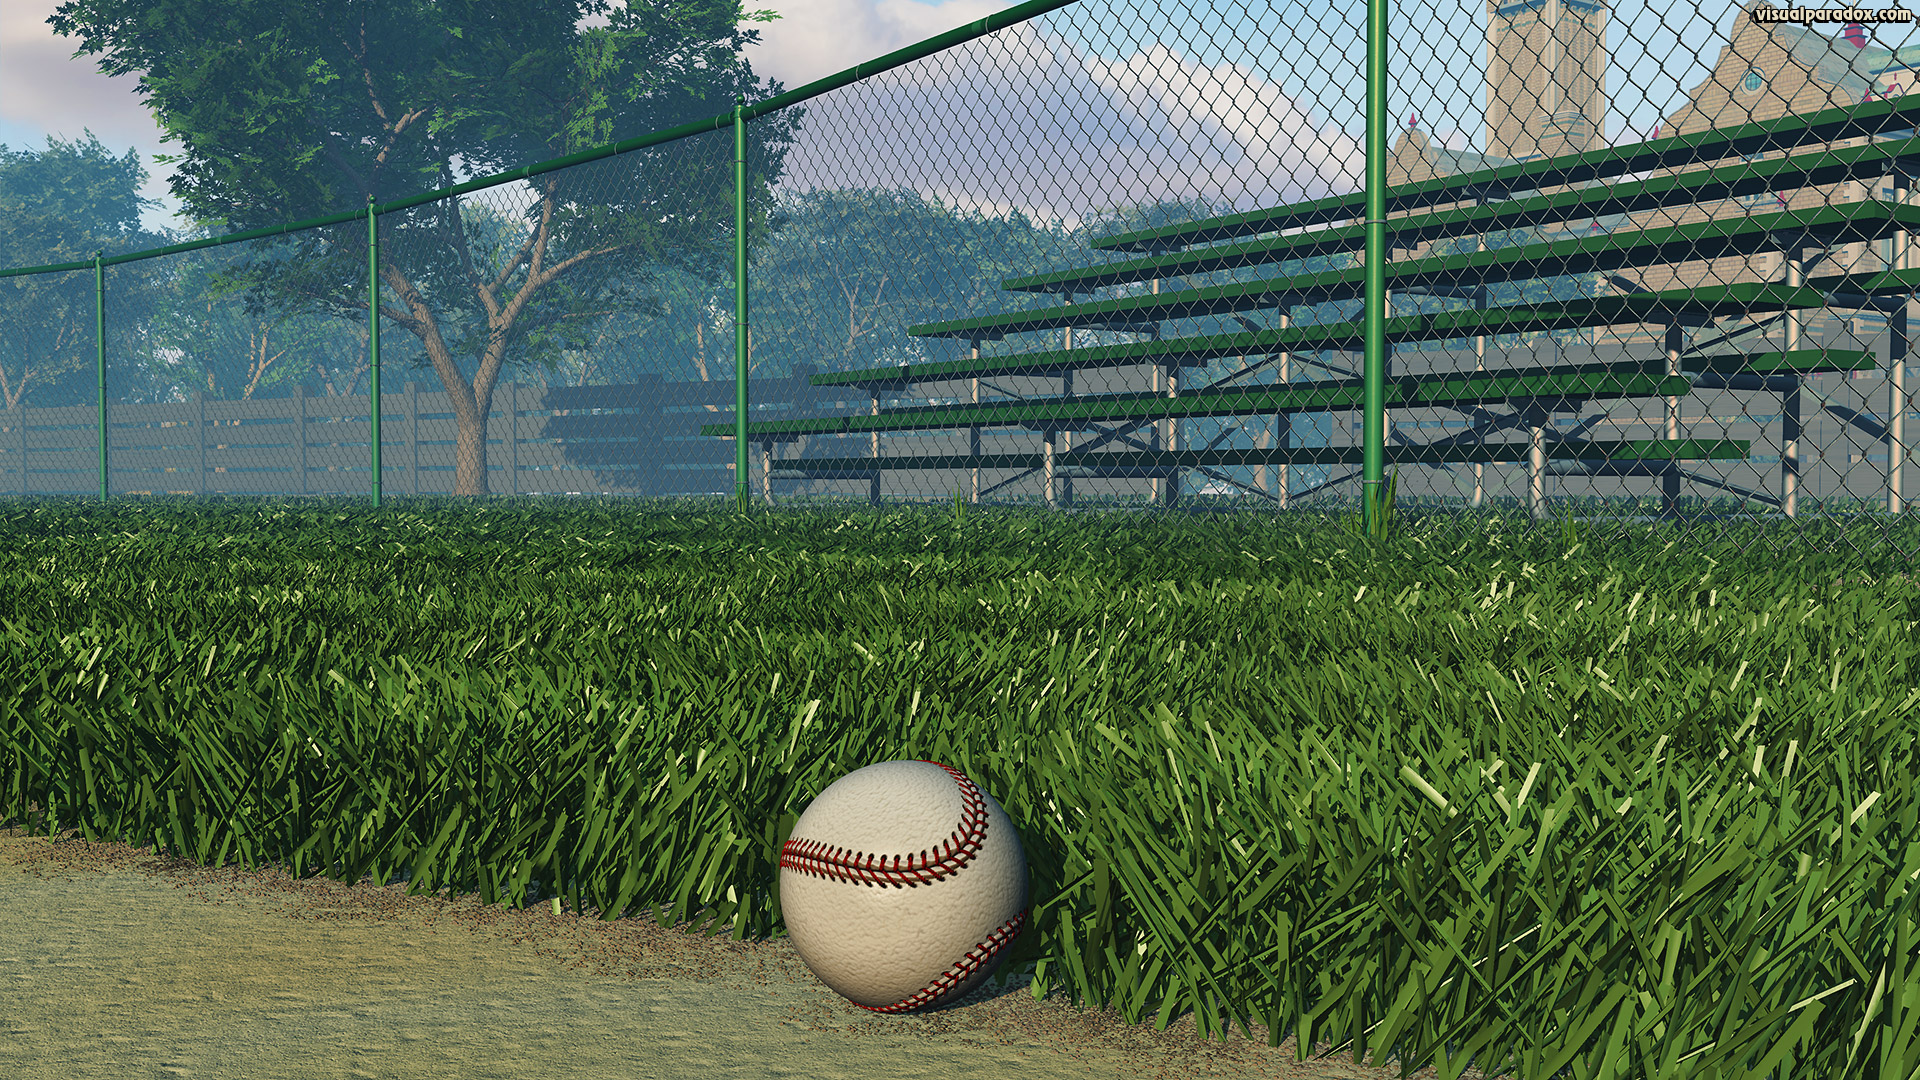 athletics, ball, base, baseball, bleachers, chain, chain-link, chainlink, clouds, diamond, dirt, empty, exercise, fence, field, first, foul, game, green, hardball, health, healthy, hit, infield, park, play, recreation, sandlot, seasonal, sky, sport, sports, stands, summer, sunny, tan, team, trees, white, woods, 3d, wallpaper